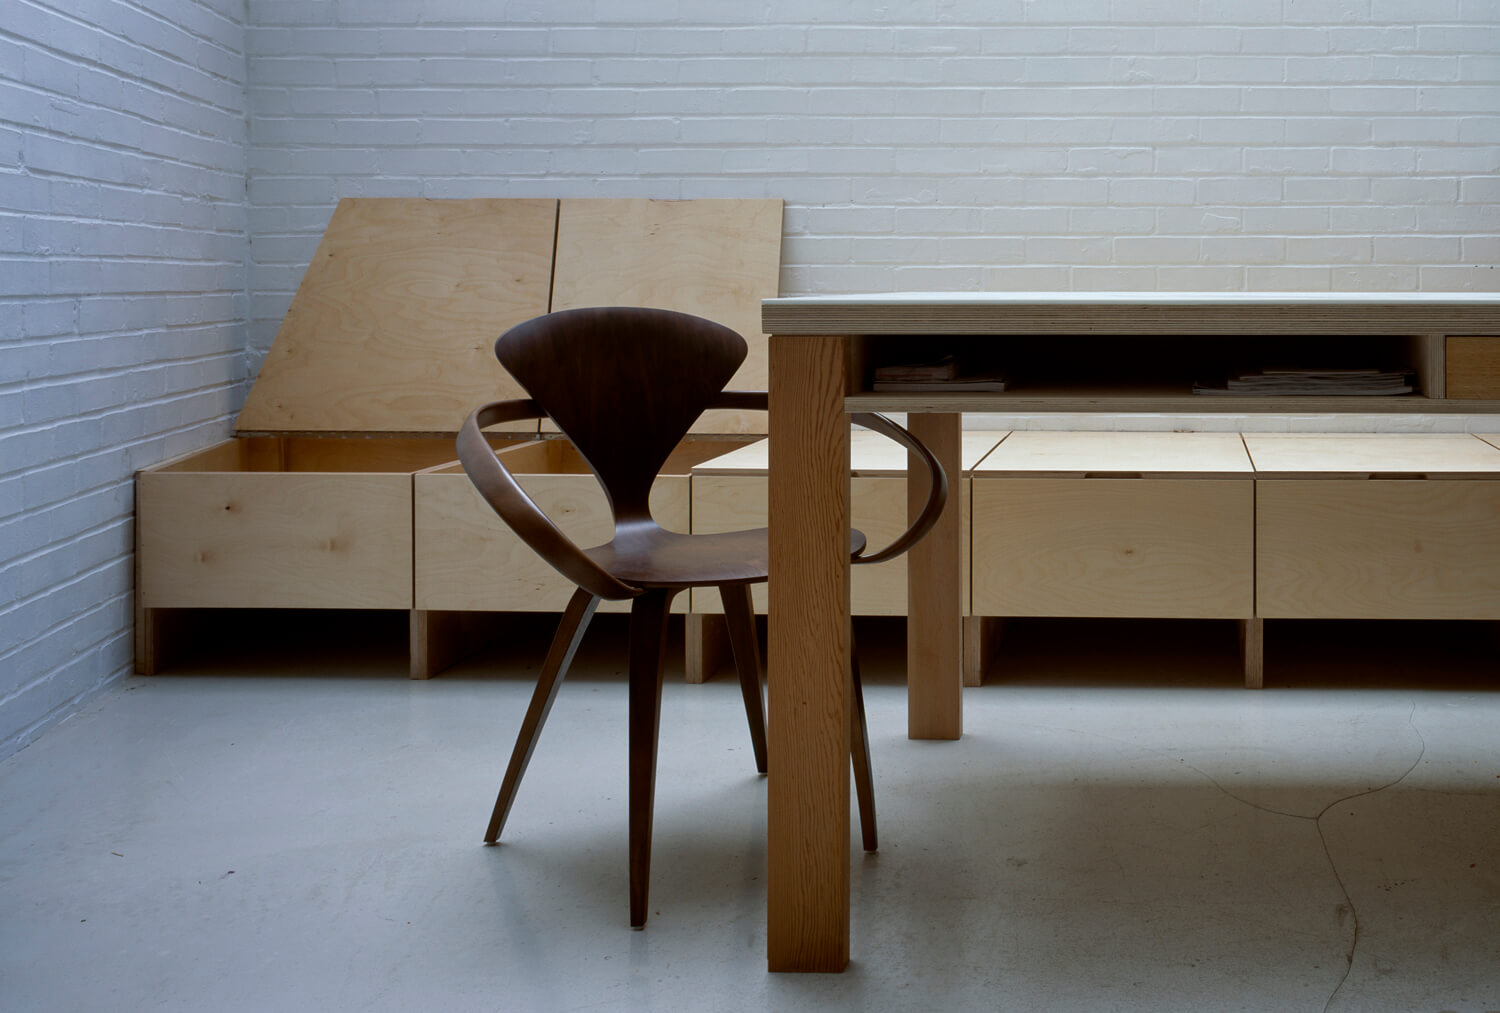 3 Table-Dining-Kitchen-Bizley-Somerset-Architect-Newington-Green-cherner-chair.jpg